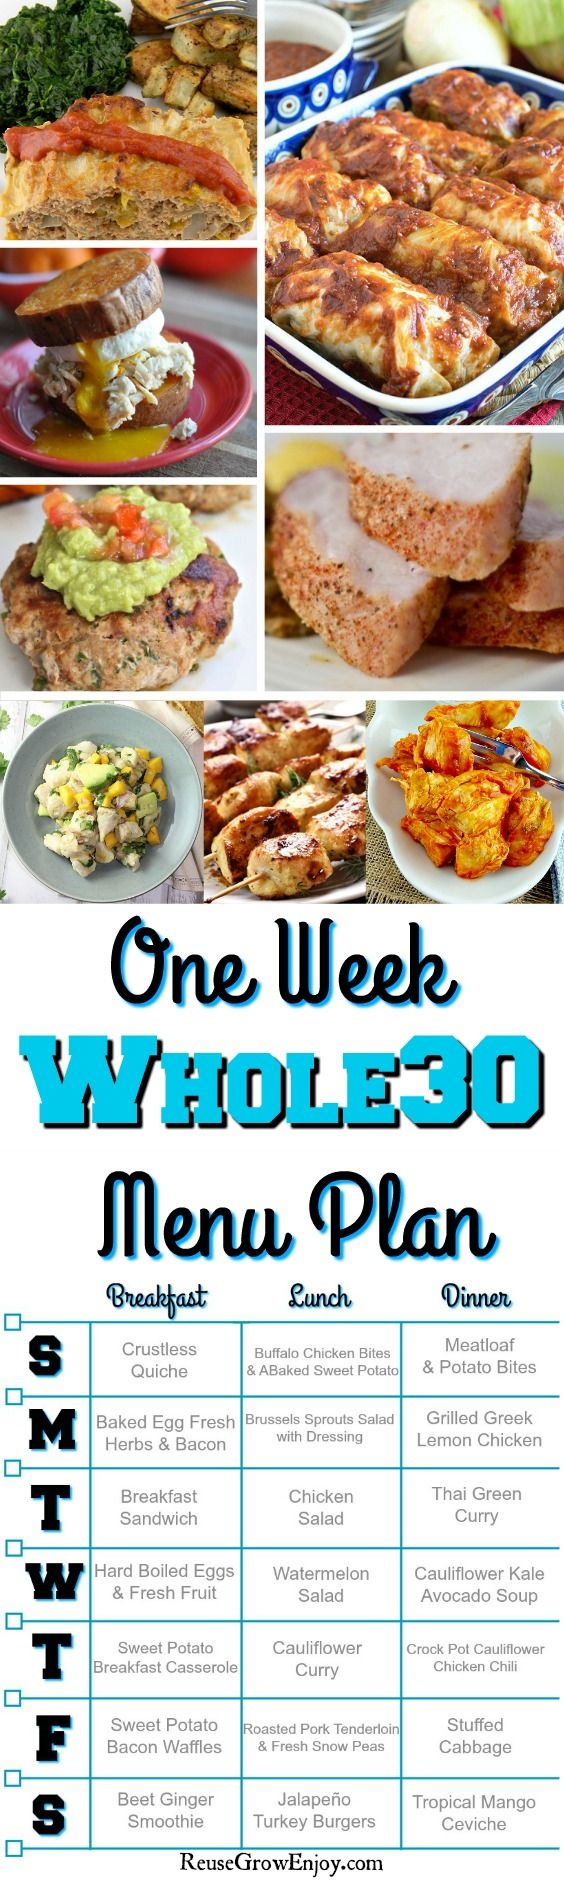 Are you wanting to do the Whole30 diet? Not sure what to eat? We have a printable Whole30 Menu Plan for a week. Plus all the links to the great Whole30 recipes on the plan!